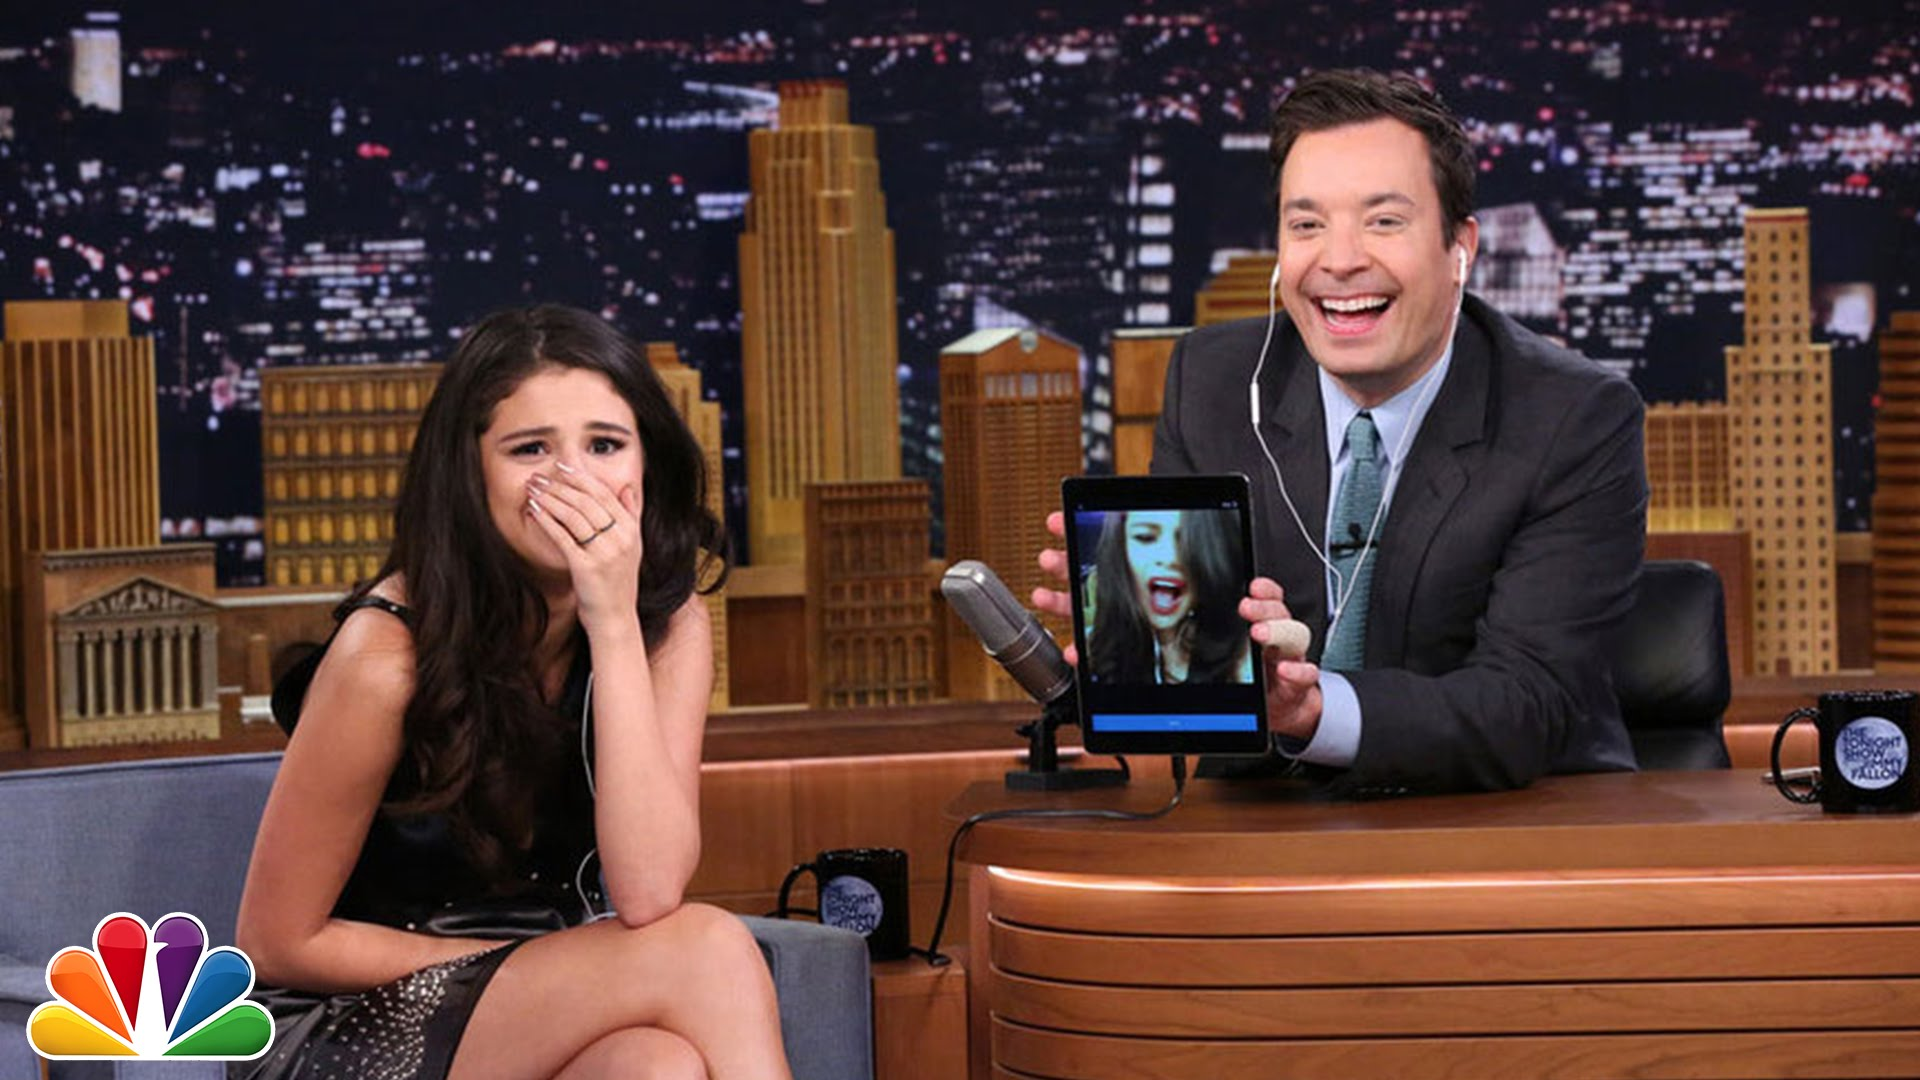 Selena Gomez at her best at Dubsmash